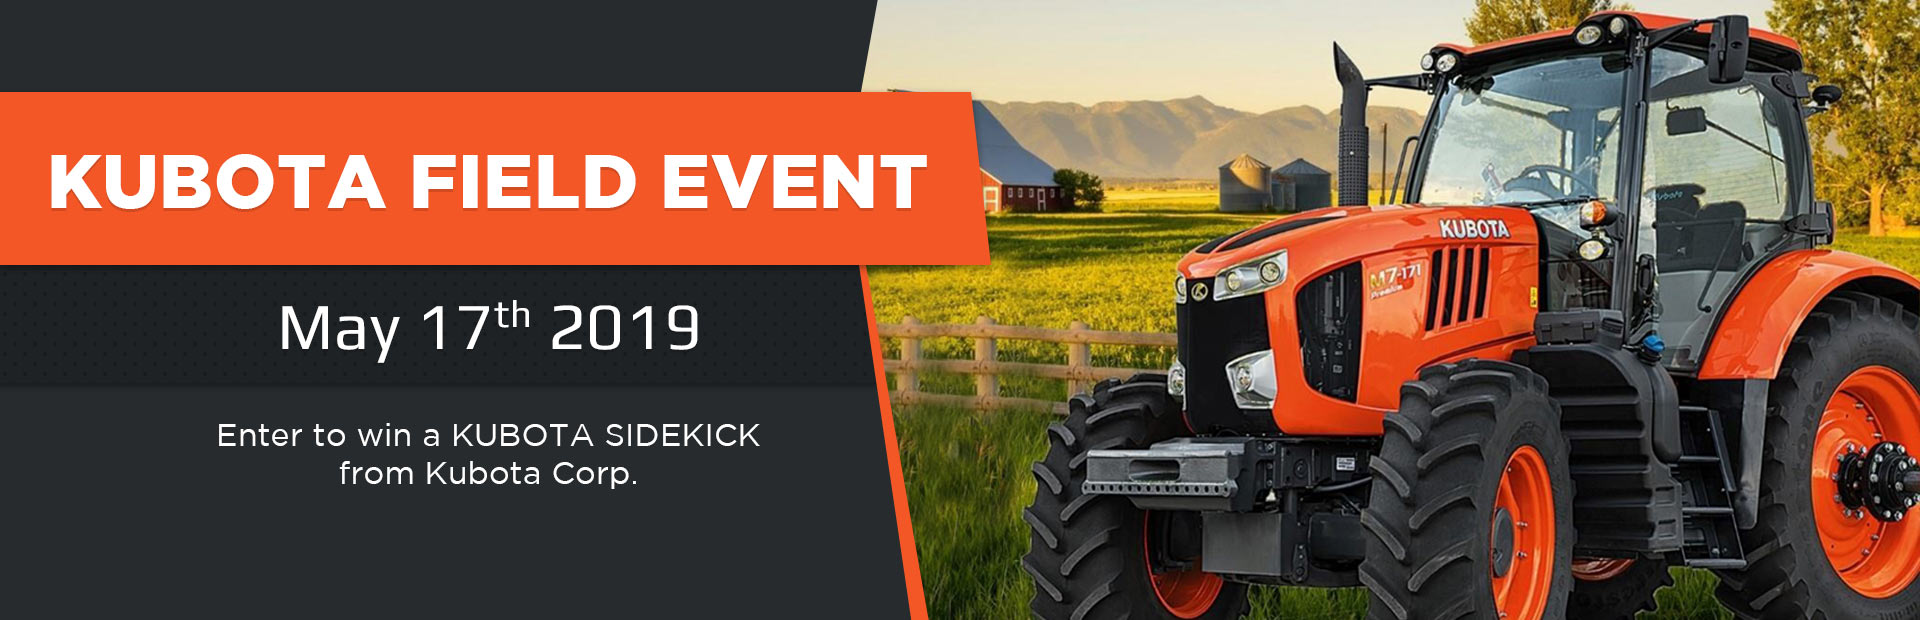 Kubota Field Event. Enter to win a Kubota Sidekick from Kubota Corp. Click here for details.